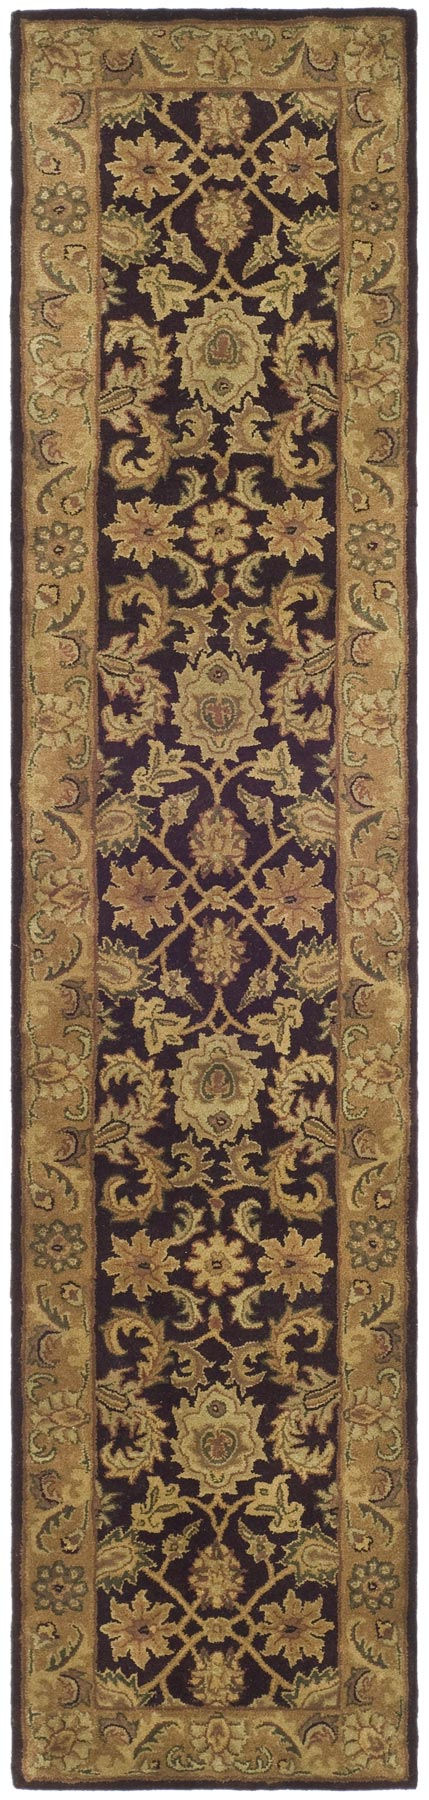 Rug Cl244b Classic Area Rugs By Safavieh